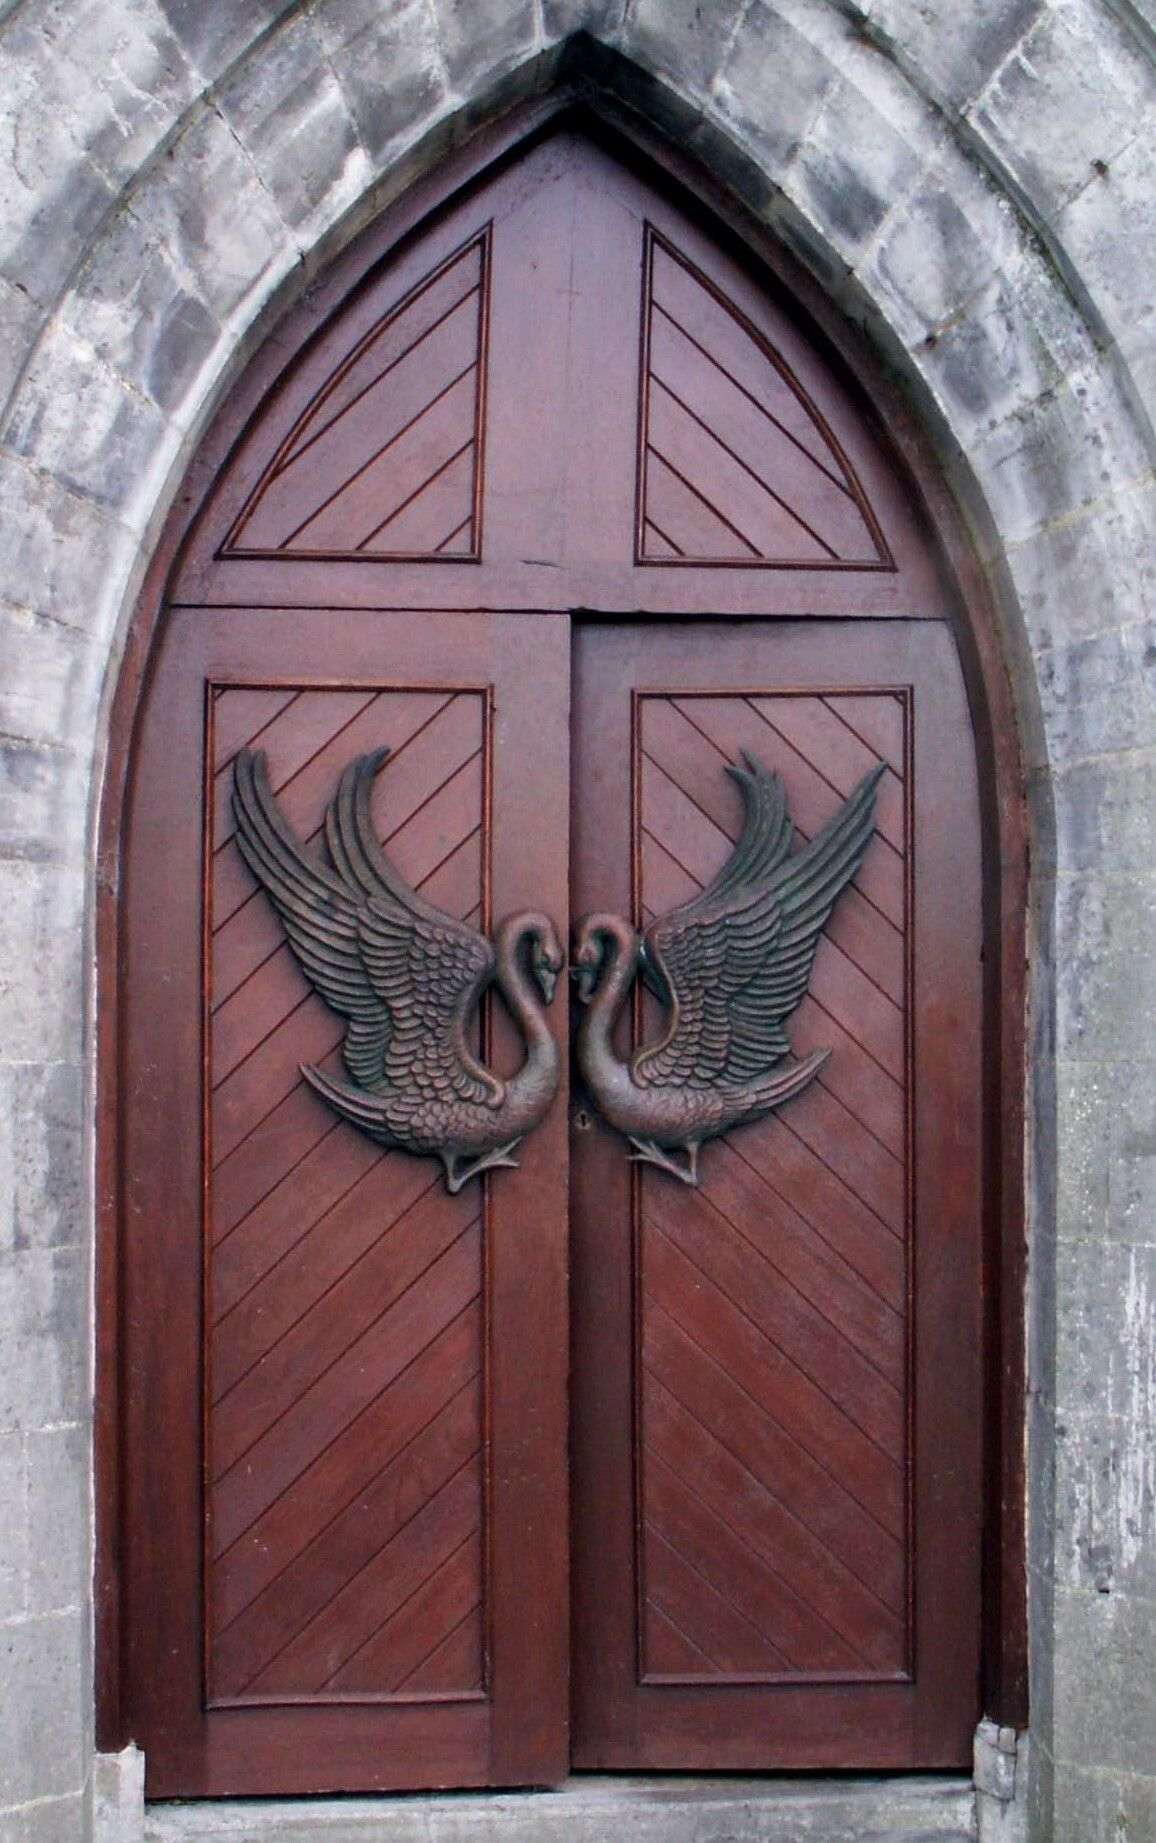 Monastery Door at Drumcliffe county Sligo Ireland. (Grave site of W.B. Yeats) & Monastery Door at Drumcliffe county Sligo Ireland. (Grave site of ...